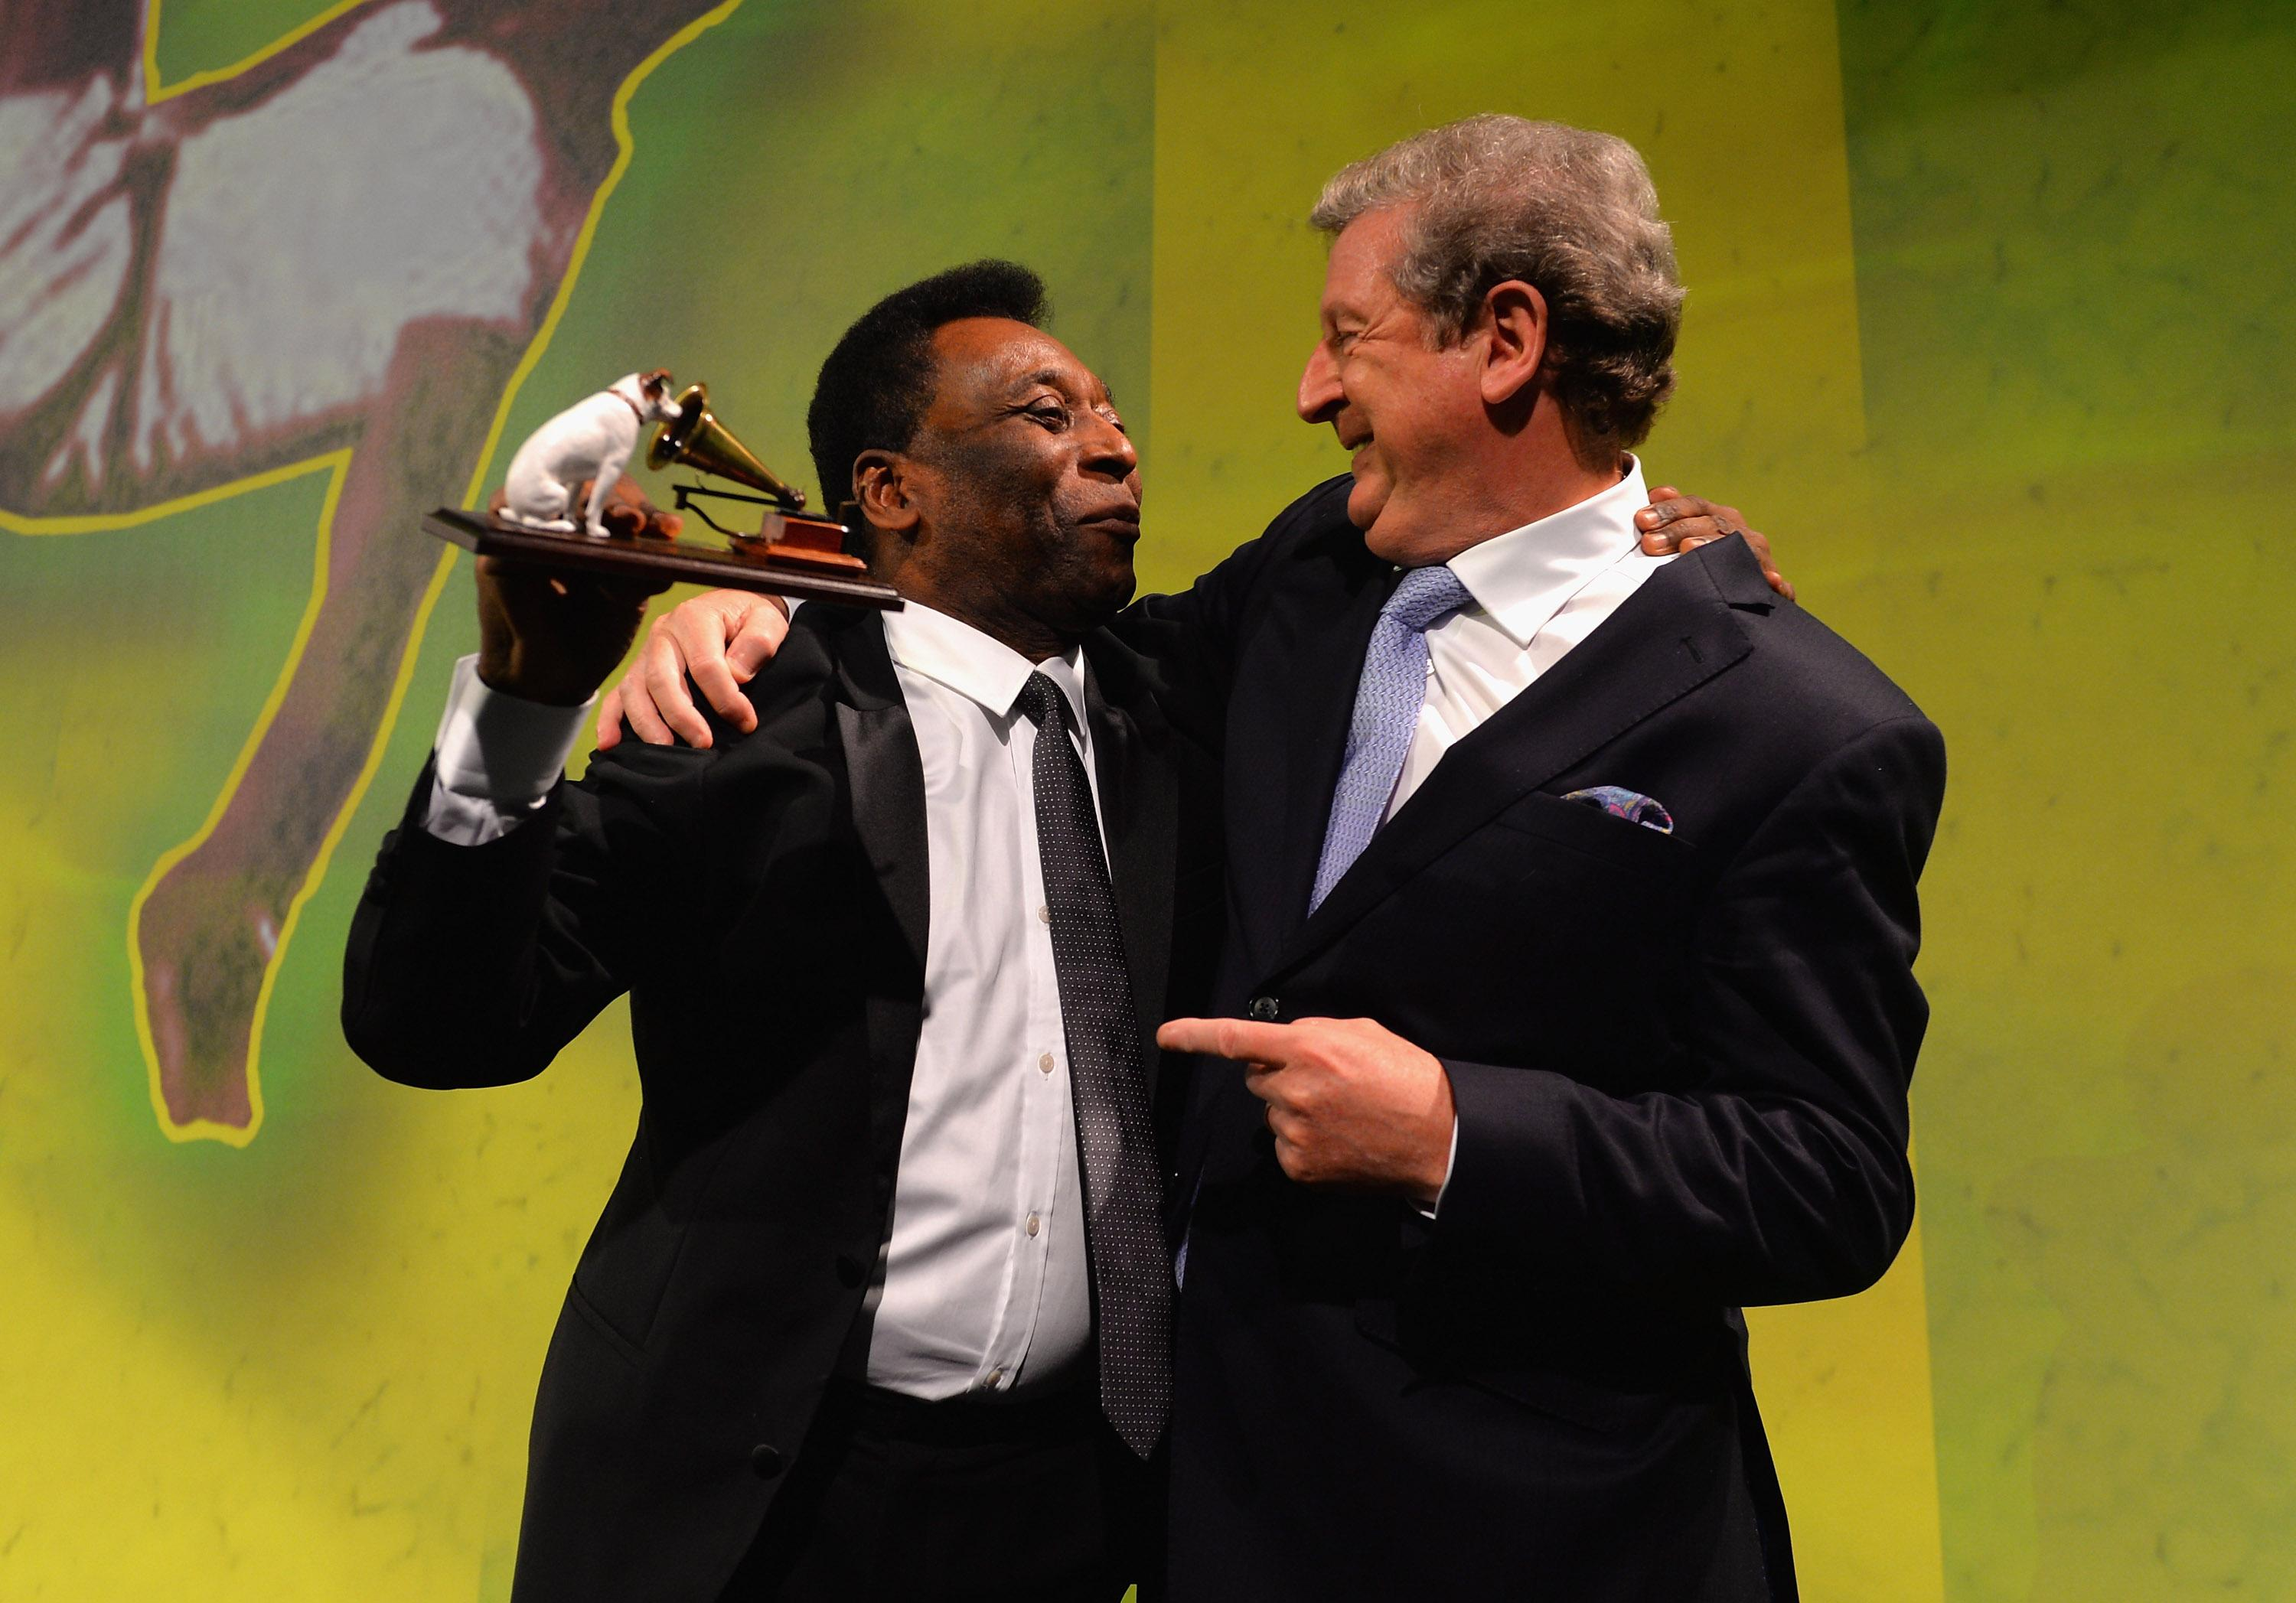 Pele is widely regarded as the best player of all time and was presented with the 2013 accolade by Roy Hodgson